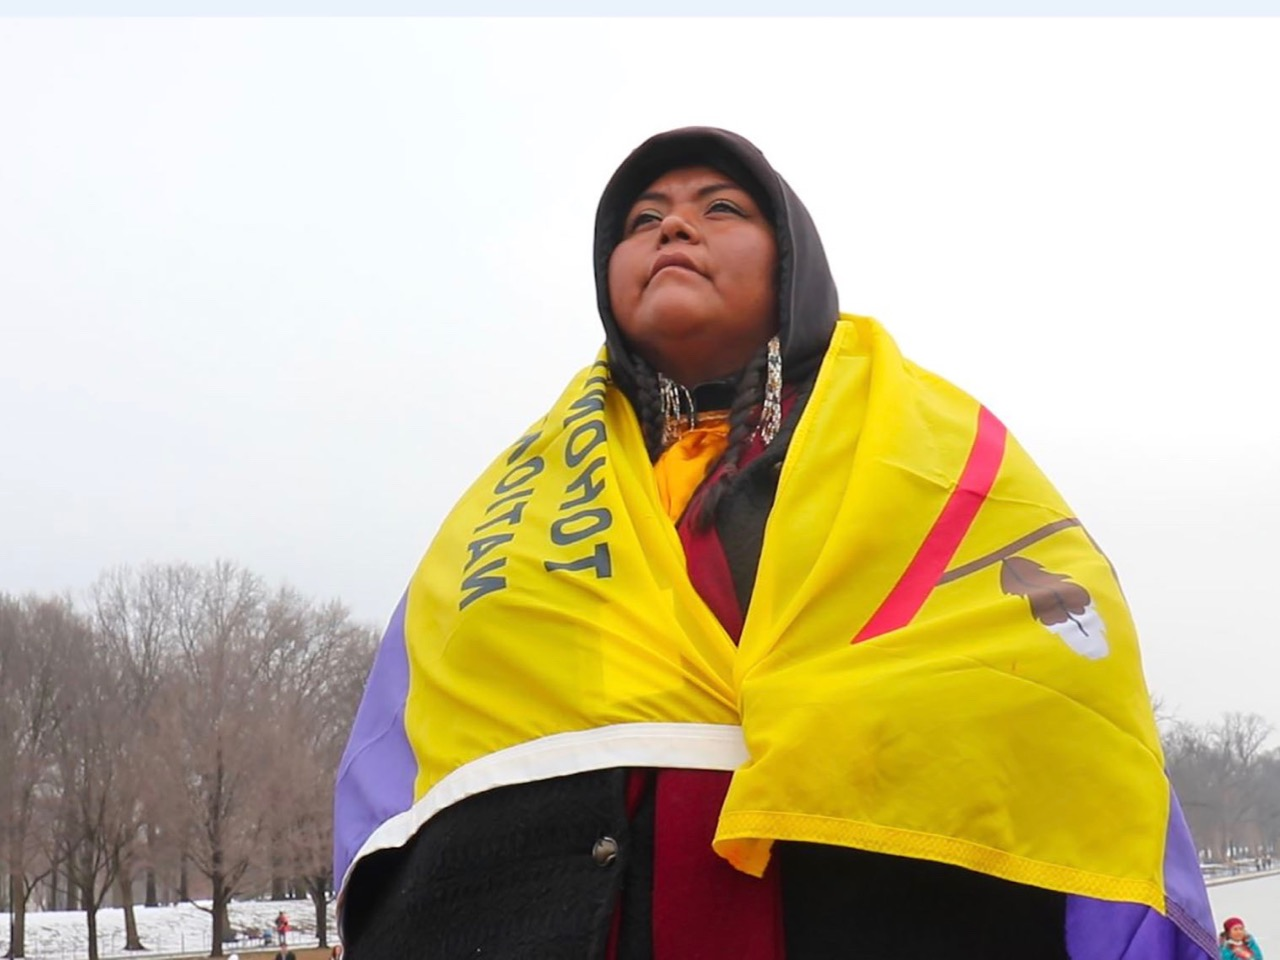 Cronkite News: Indigenous Peoples March draws thousands to Washington D.C.